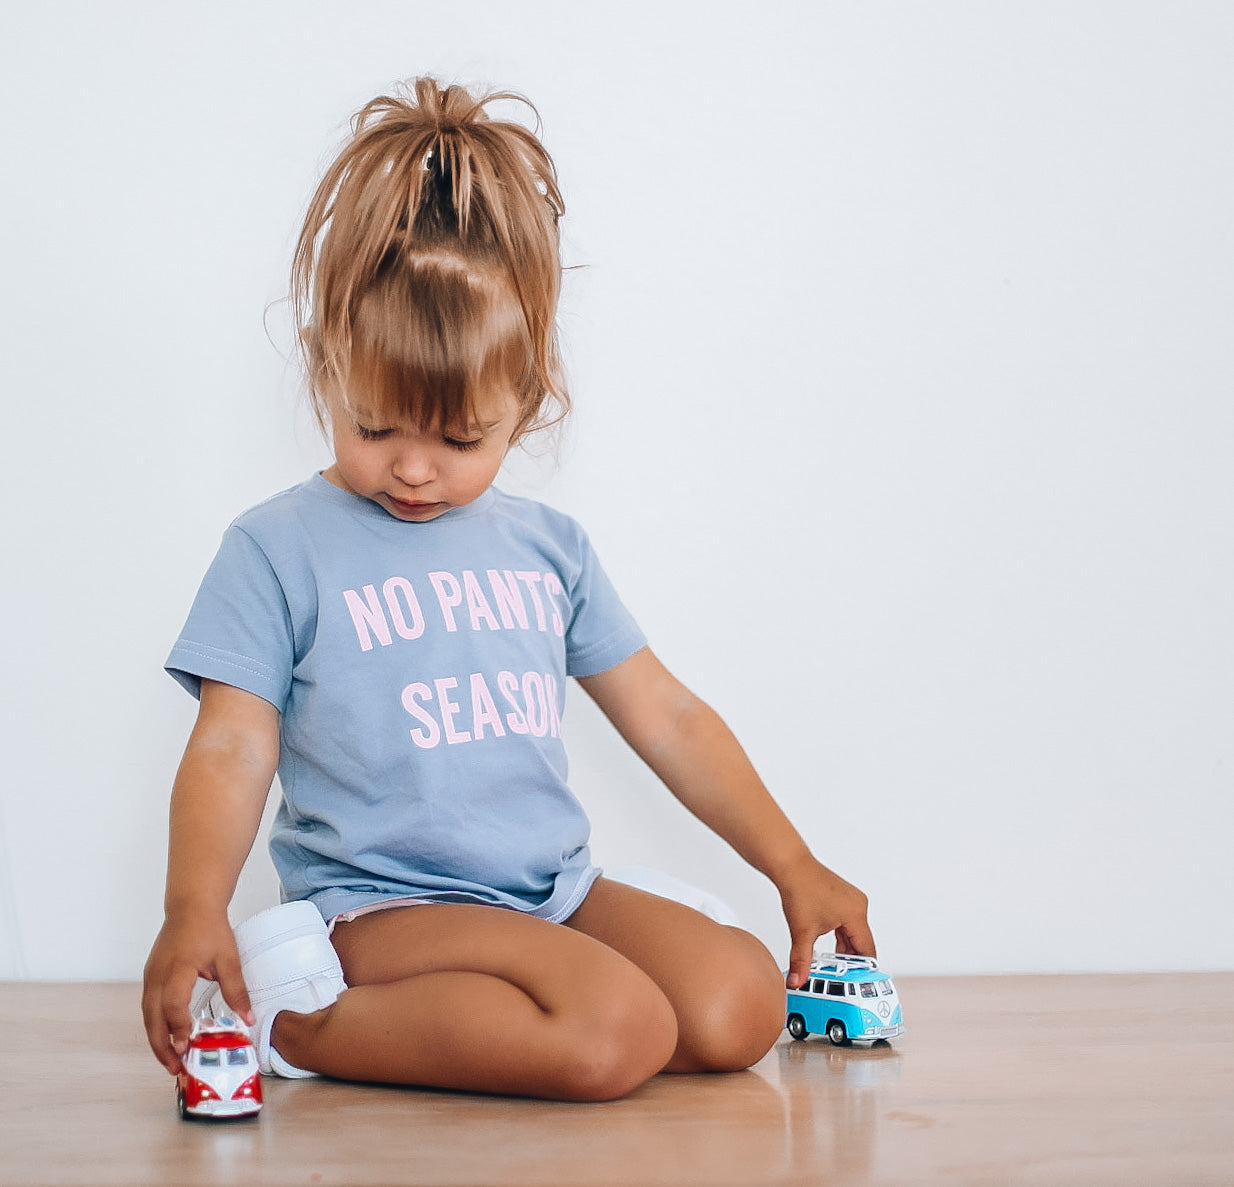 NO PANTS SEASON   - Infant | Toddler | Youth ( HAND DYED ) * READY TO SHIP *